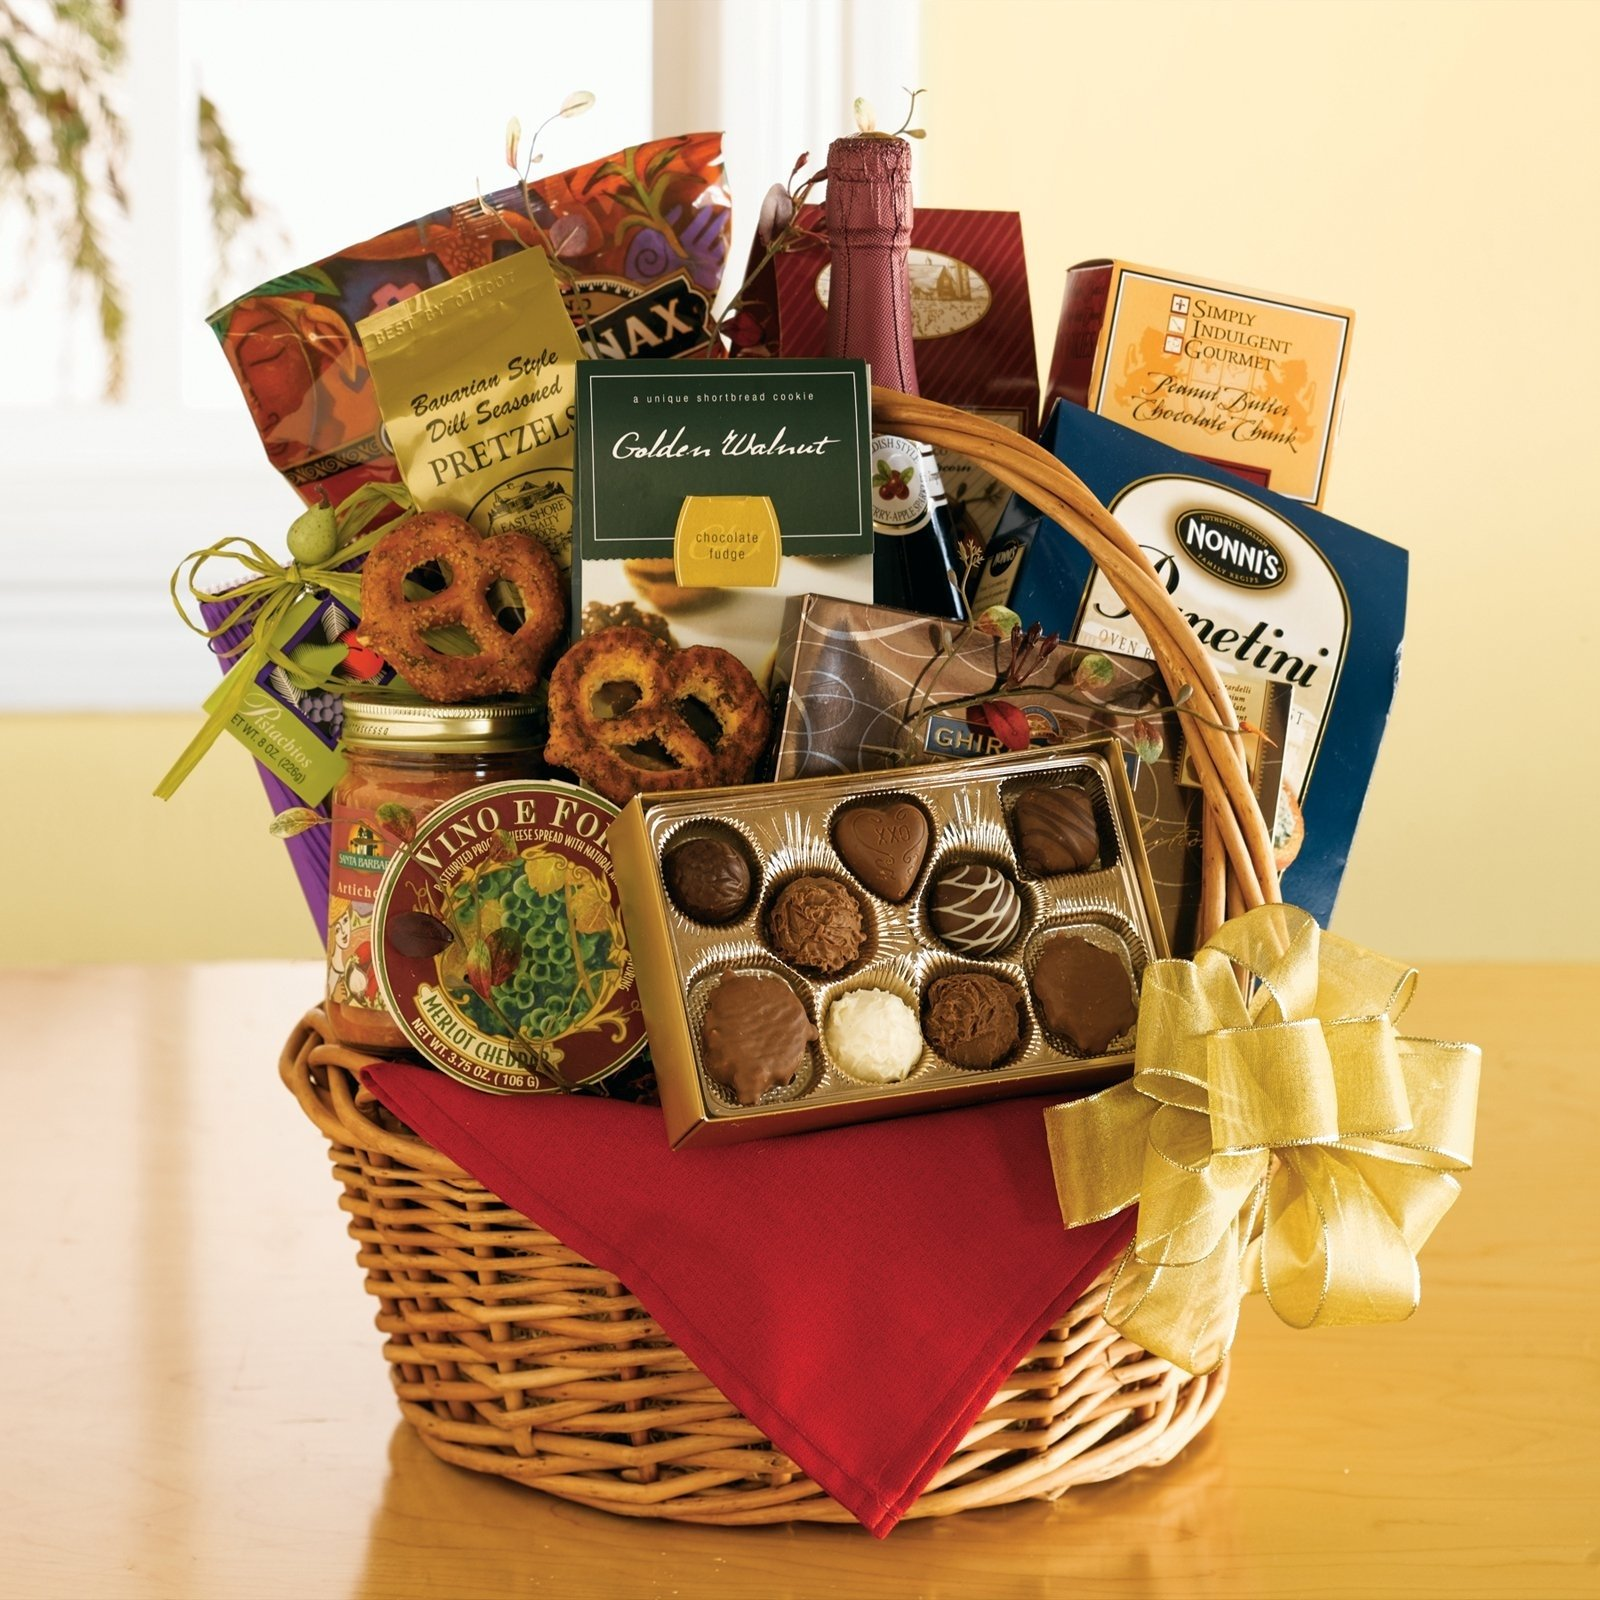 10 Trendy Gift Basket Ideas For Couples fabulous gift basket ty food gifts at your fingertips gift basket ty 2020